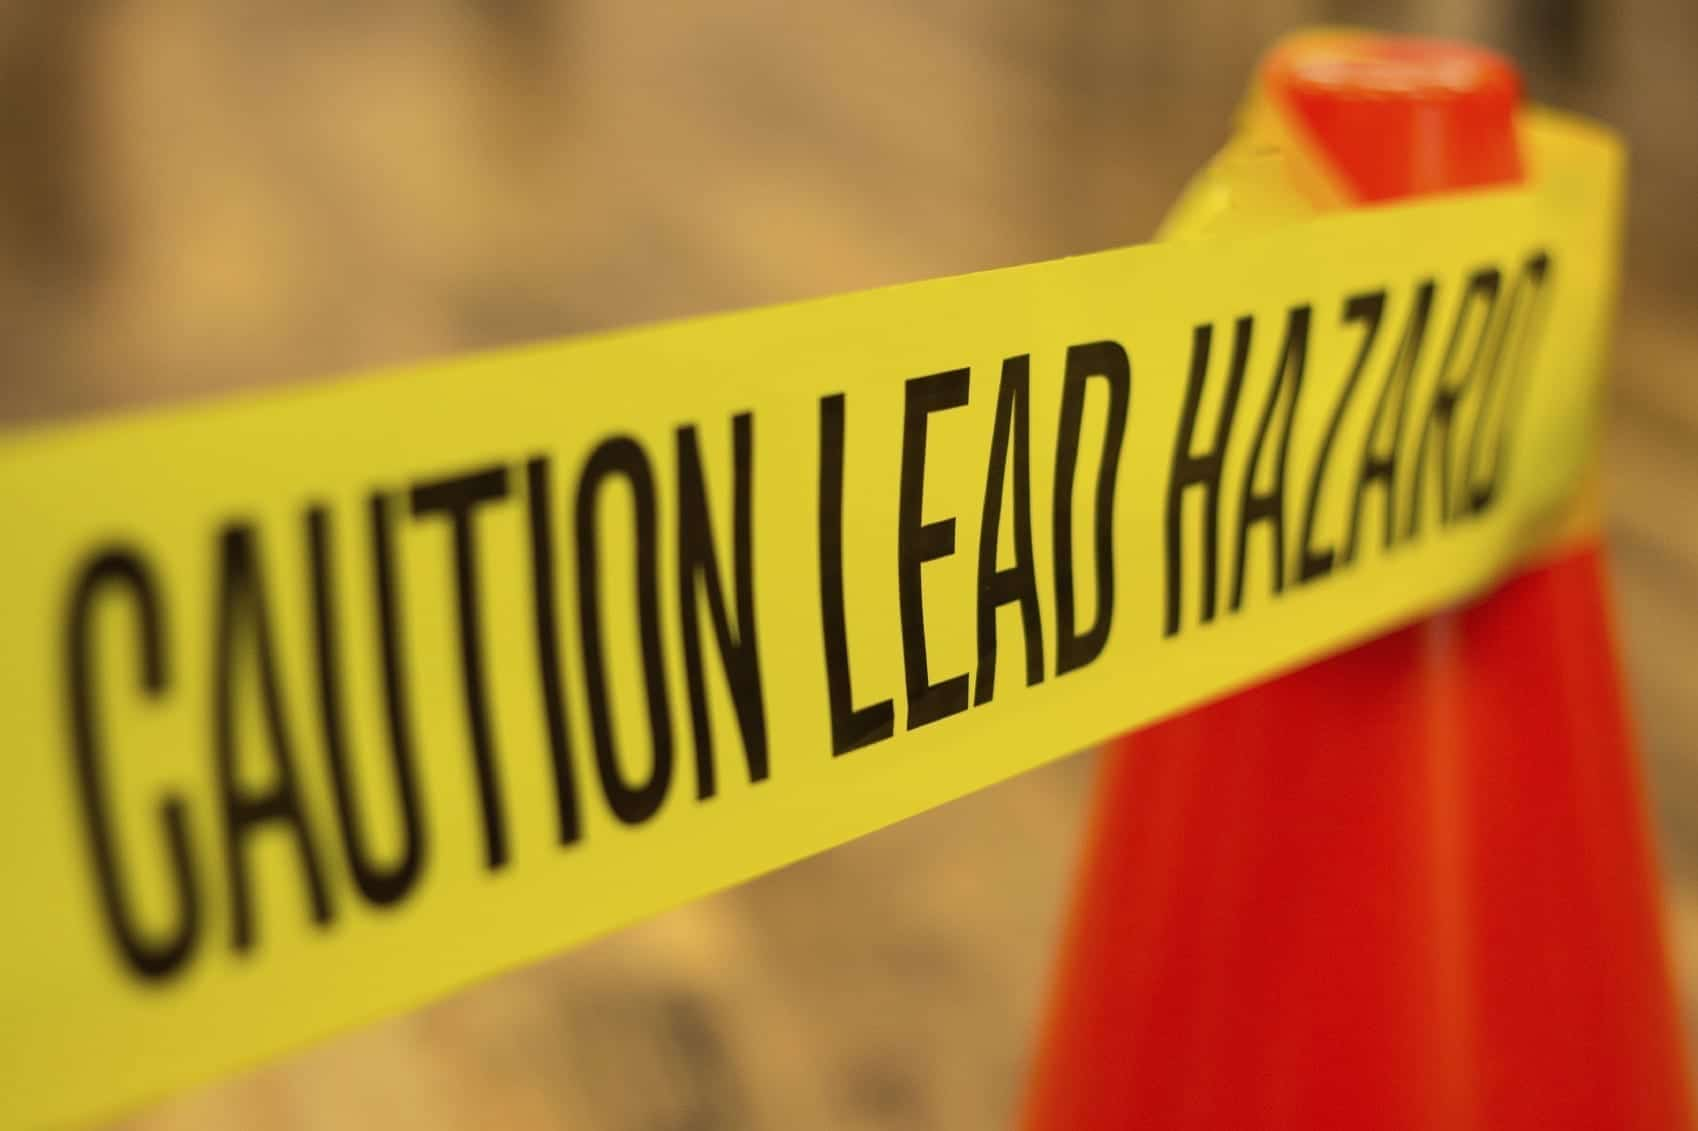 Image of a Lead Exposure Caution Sign